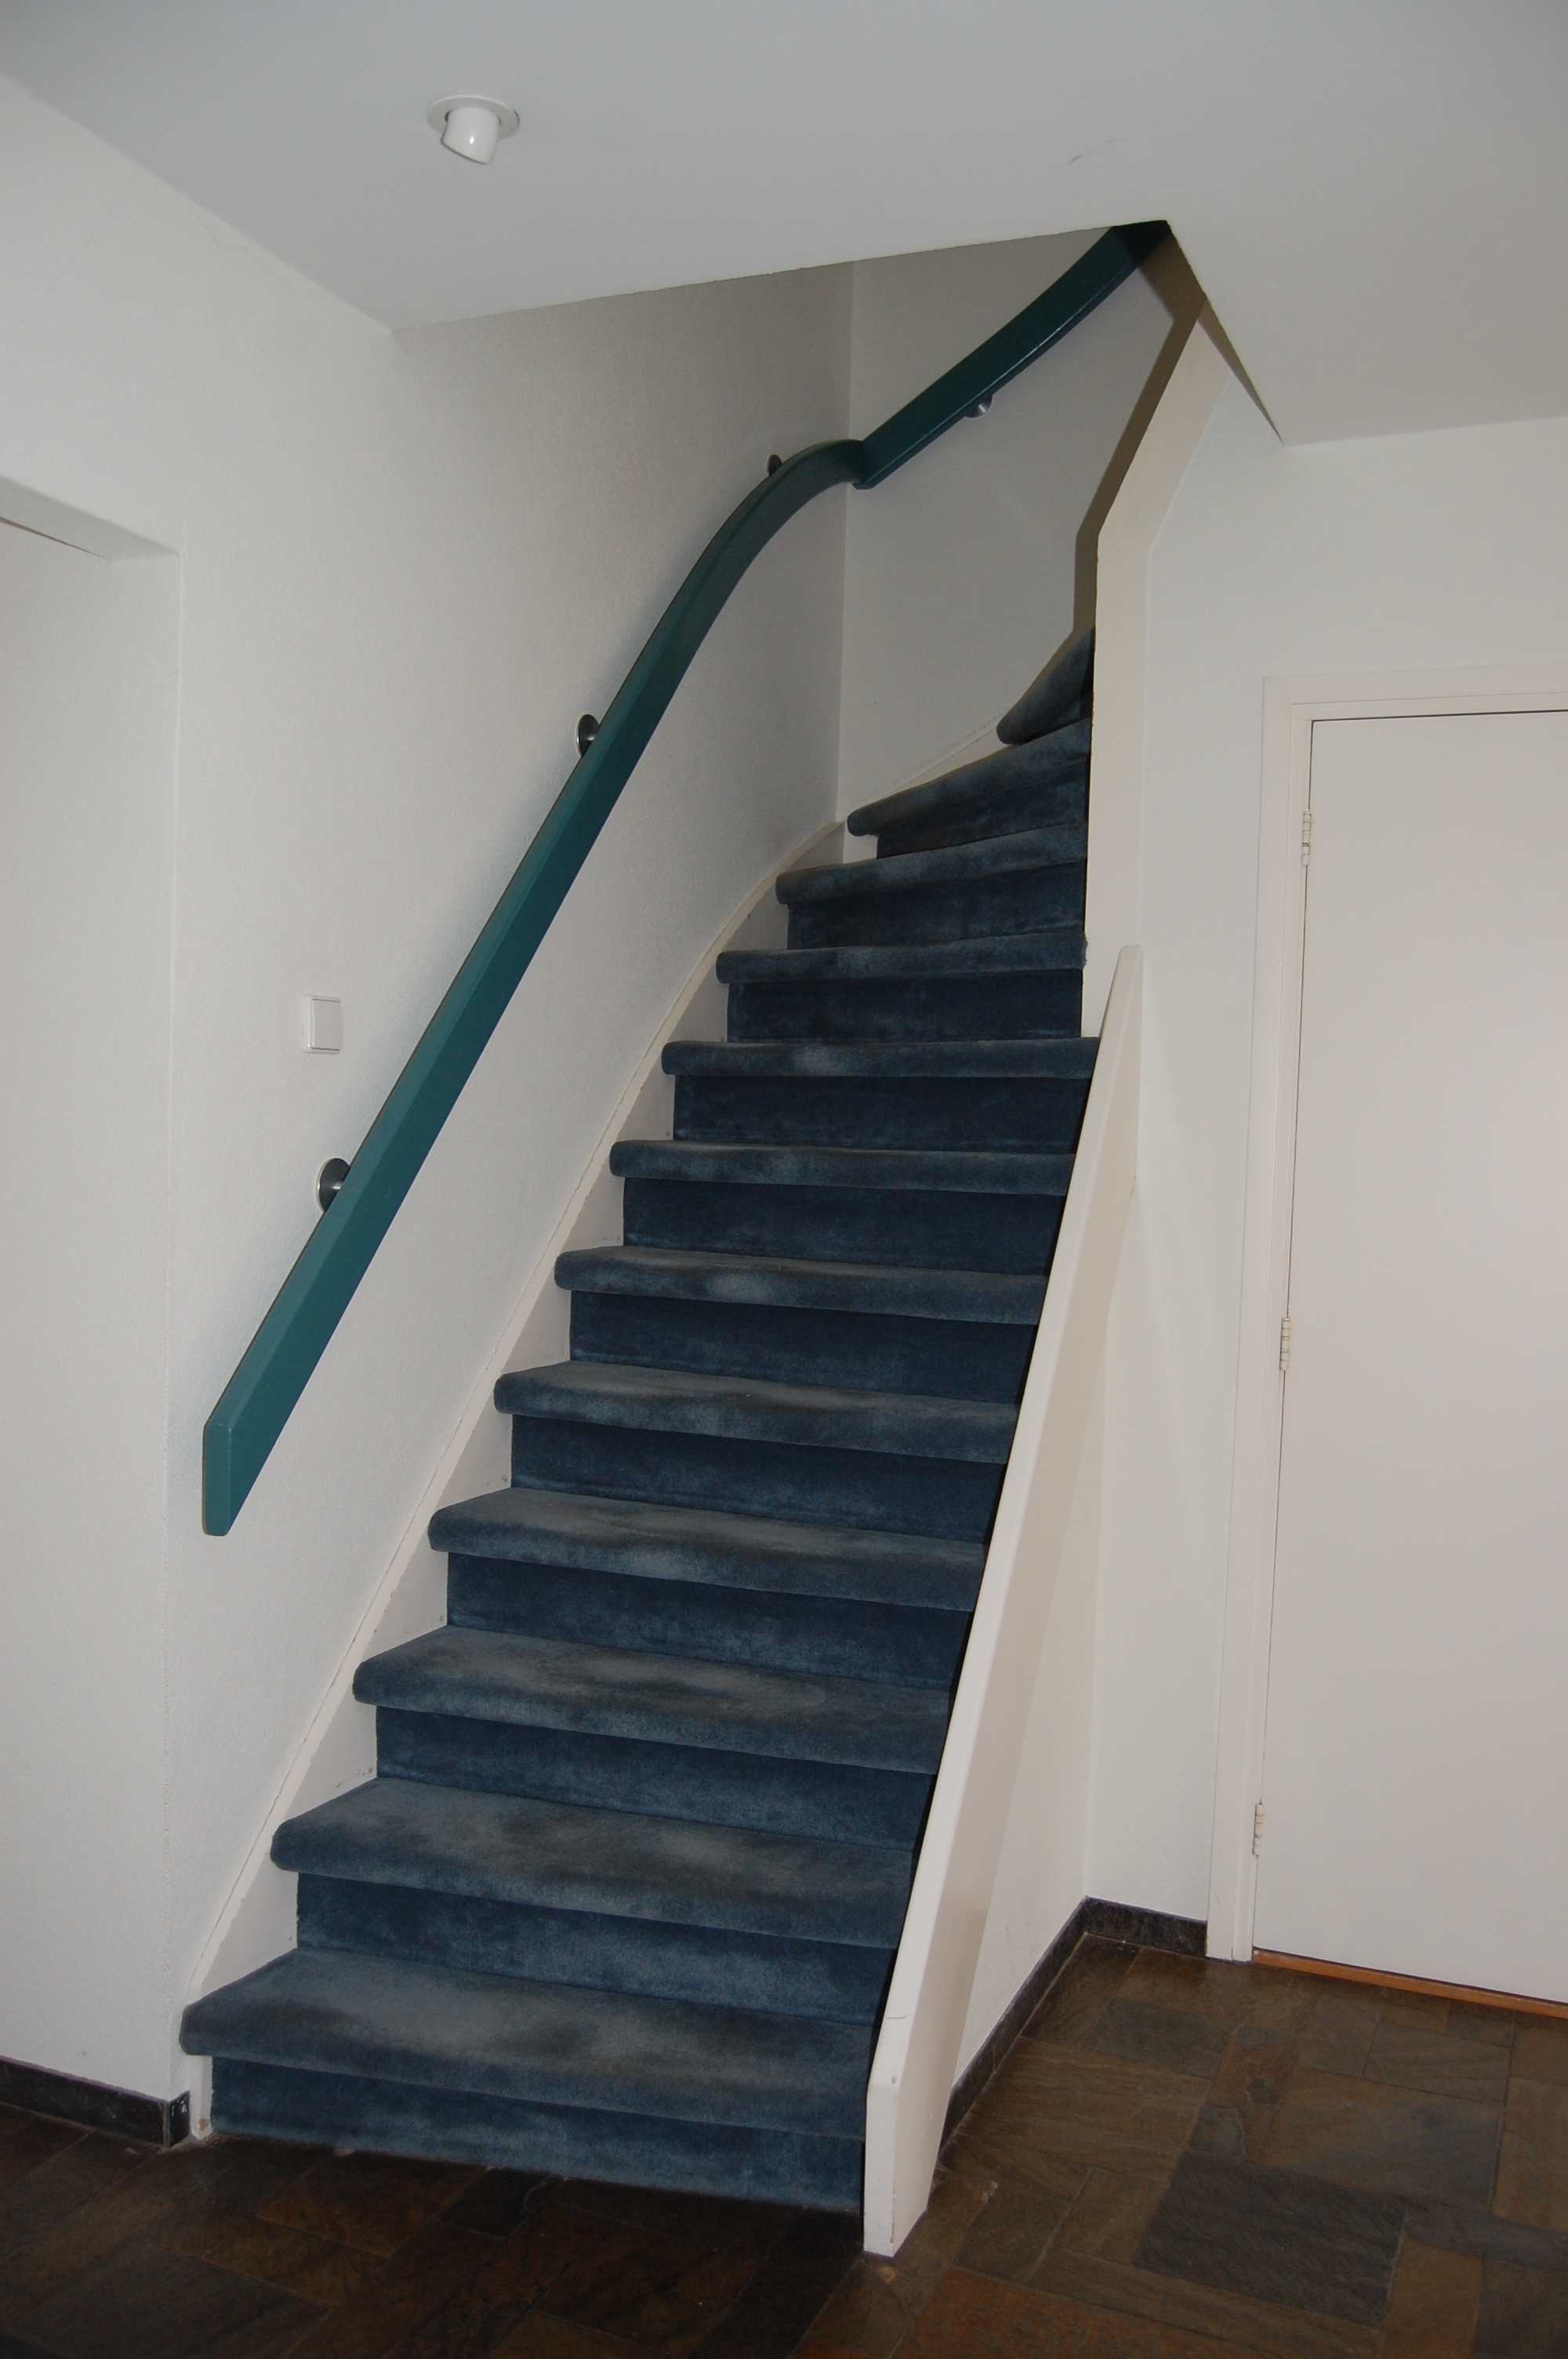 Staircase in a home in The Netherlandsedit